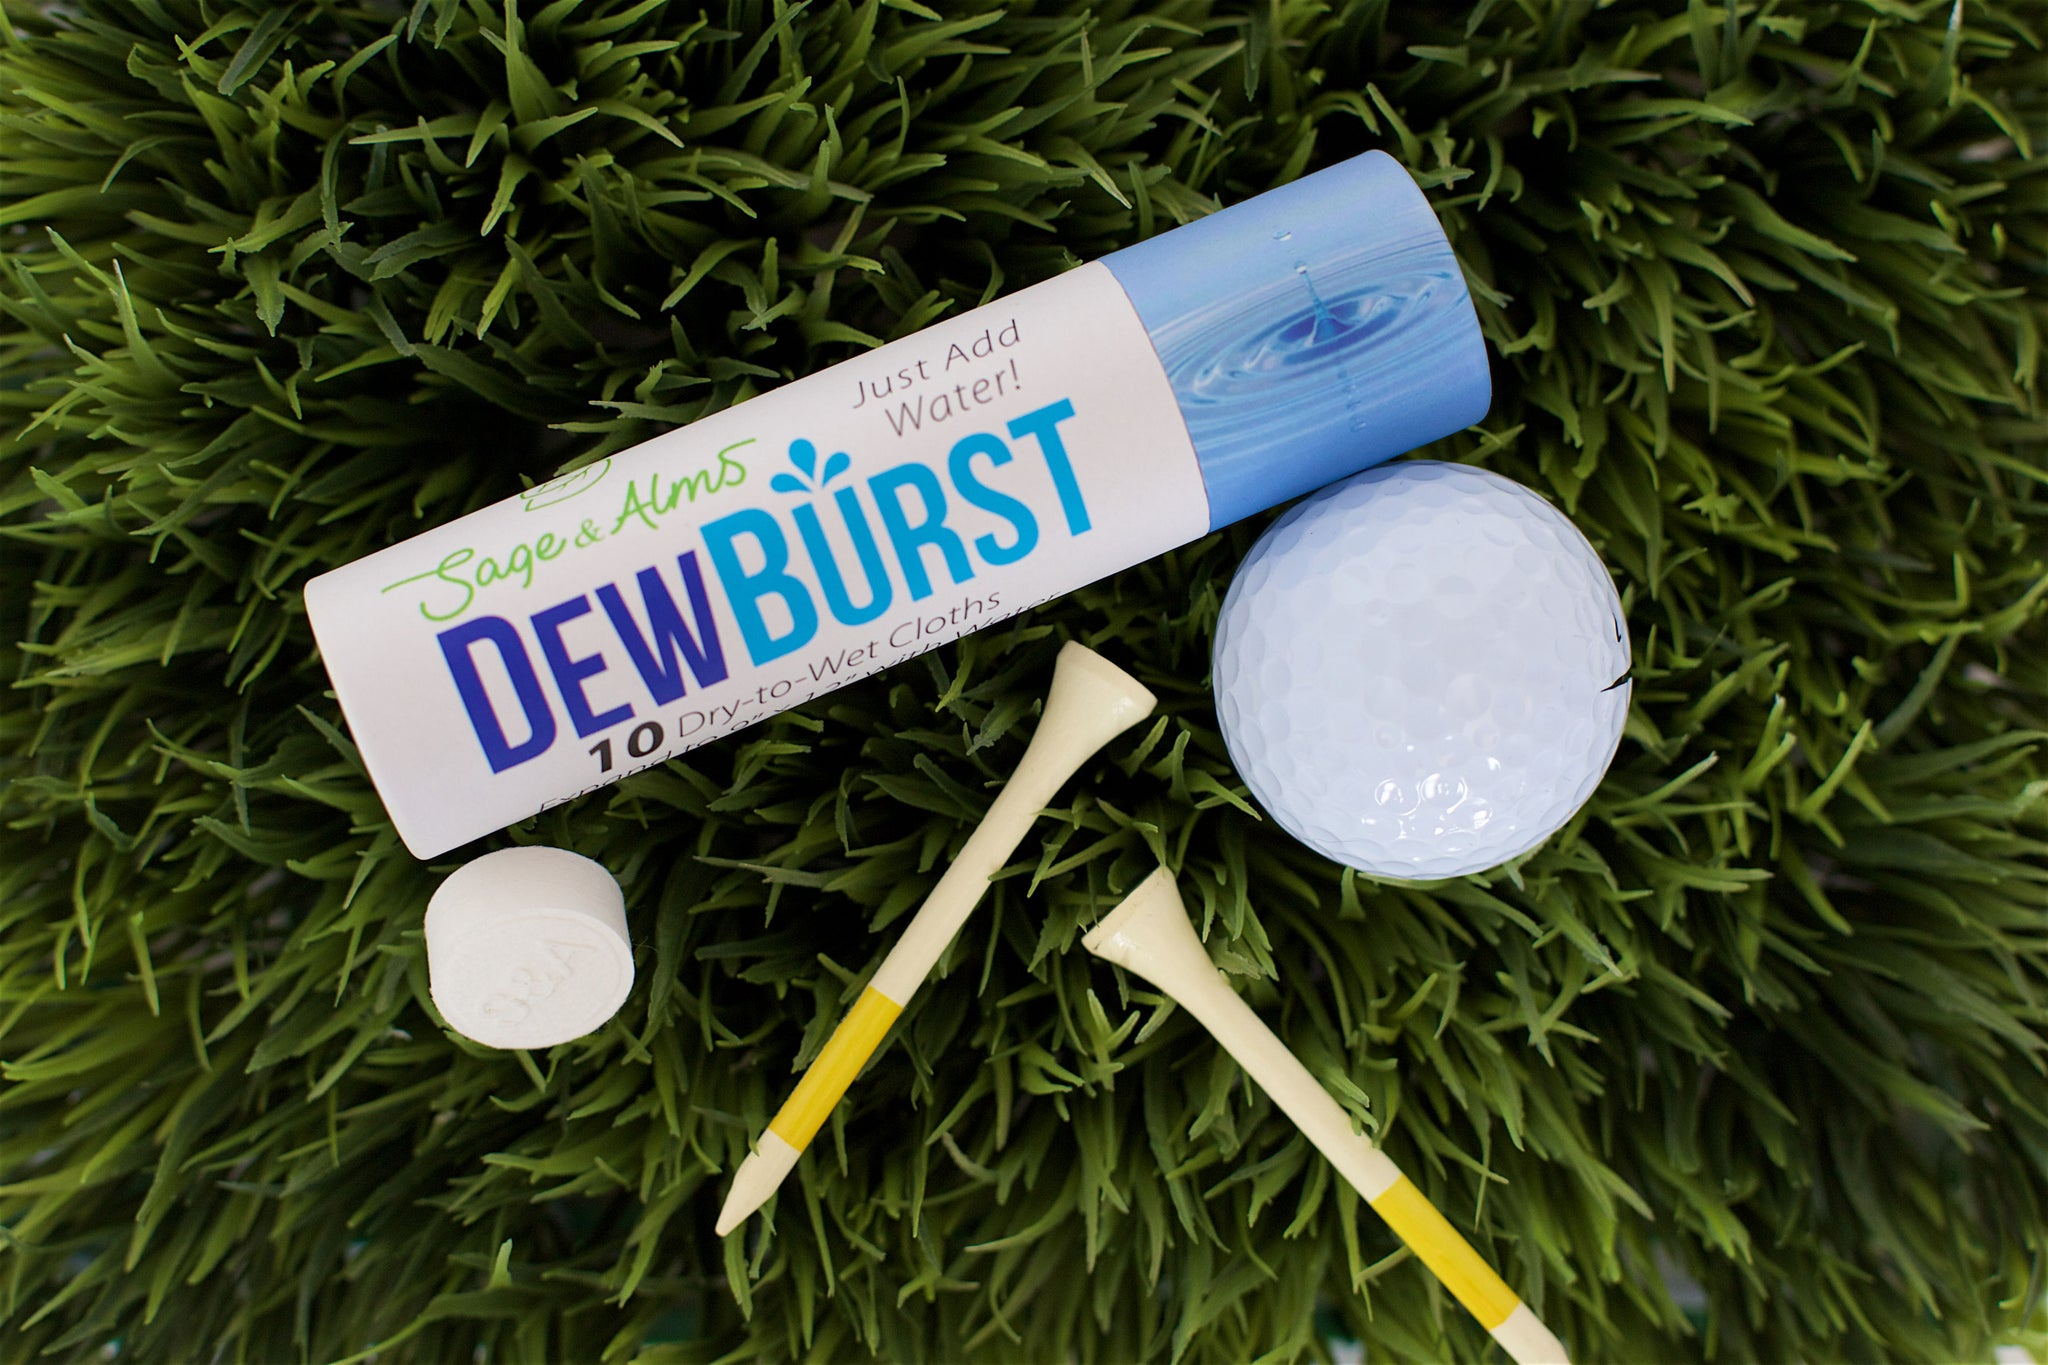 15 Tubes | 150 Cloths | $2.33 Per Tube | DewBurst